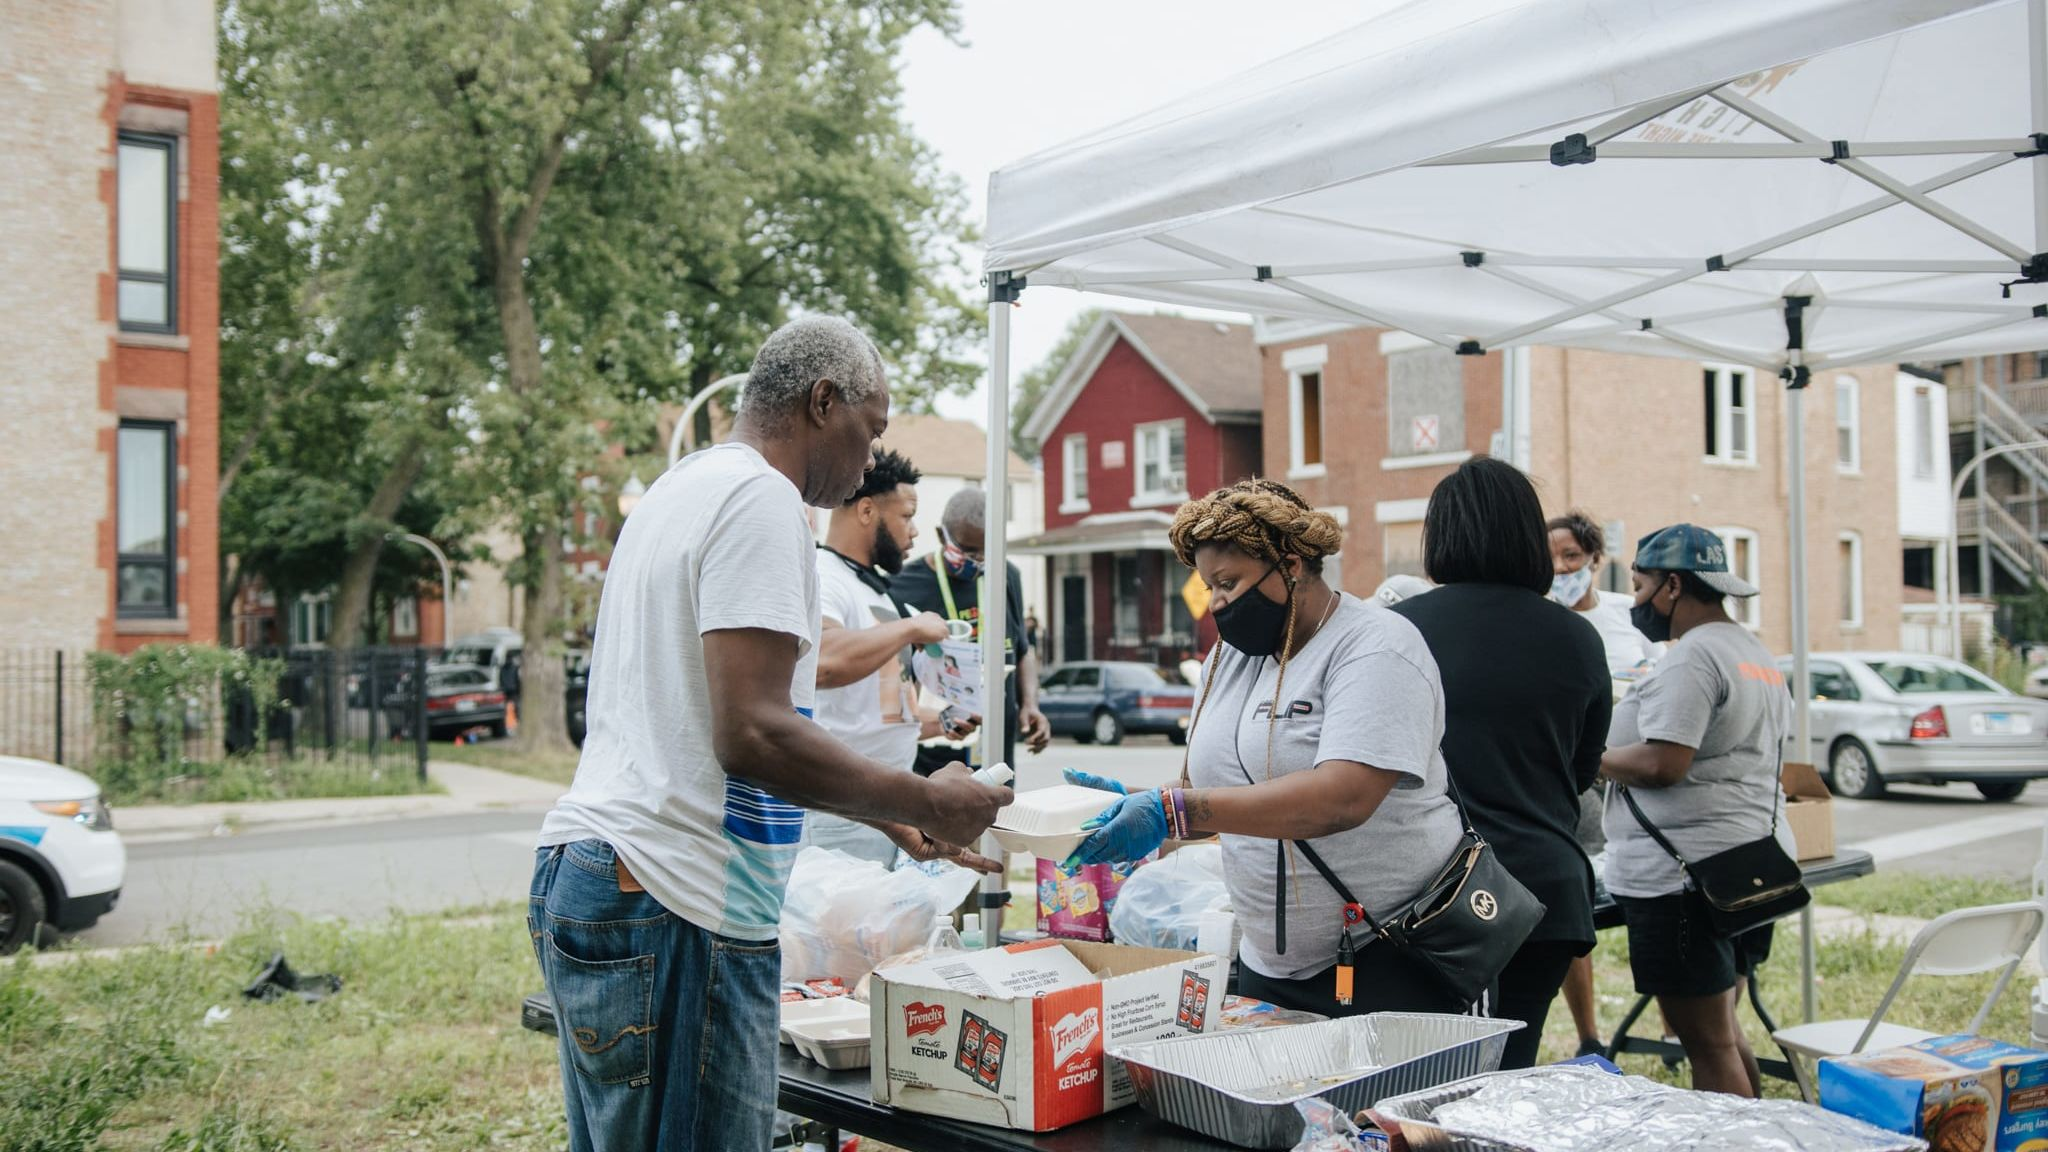 Summer Initiatives Enhance Violence Prevention in East Garfield Park 3